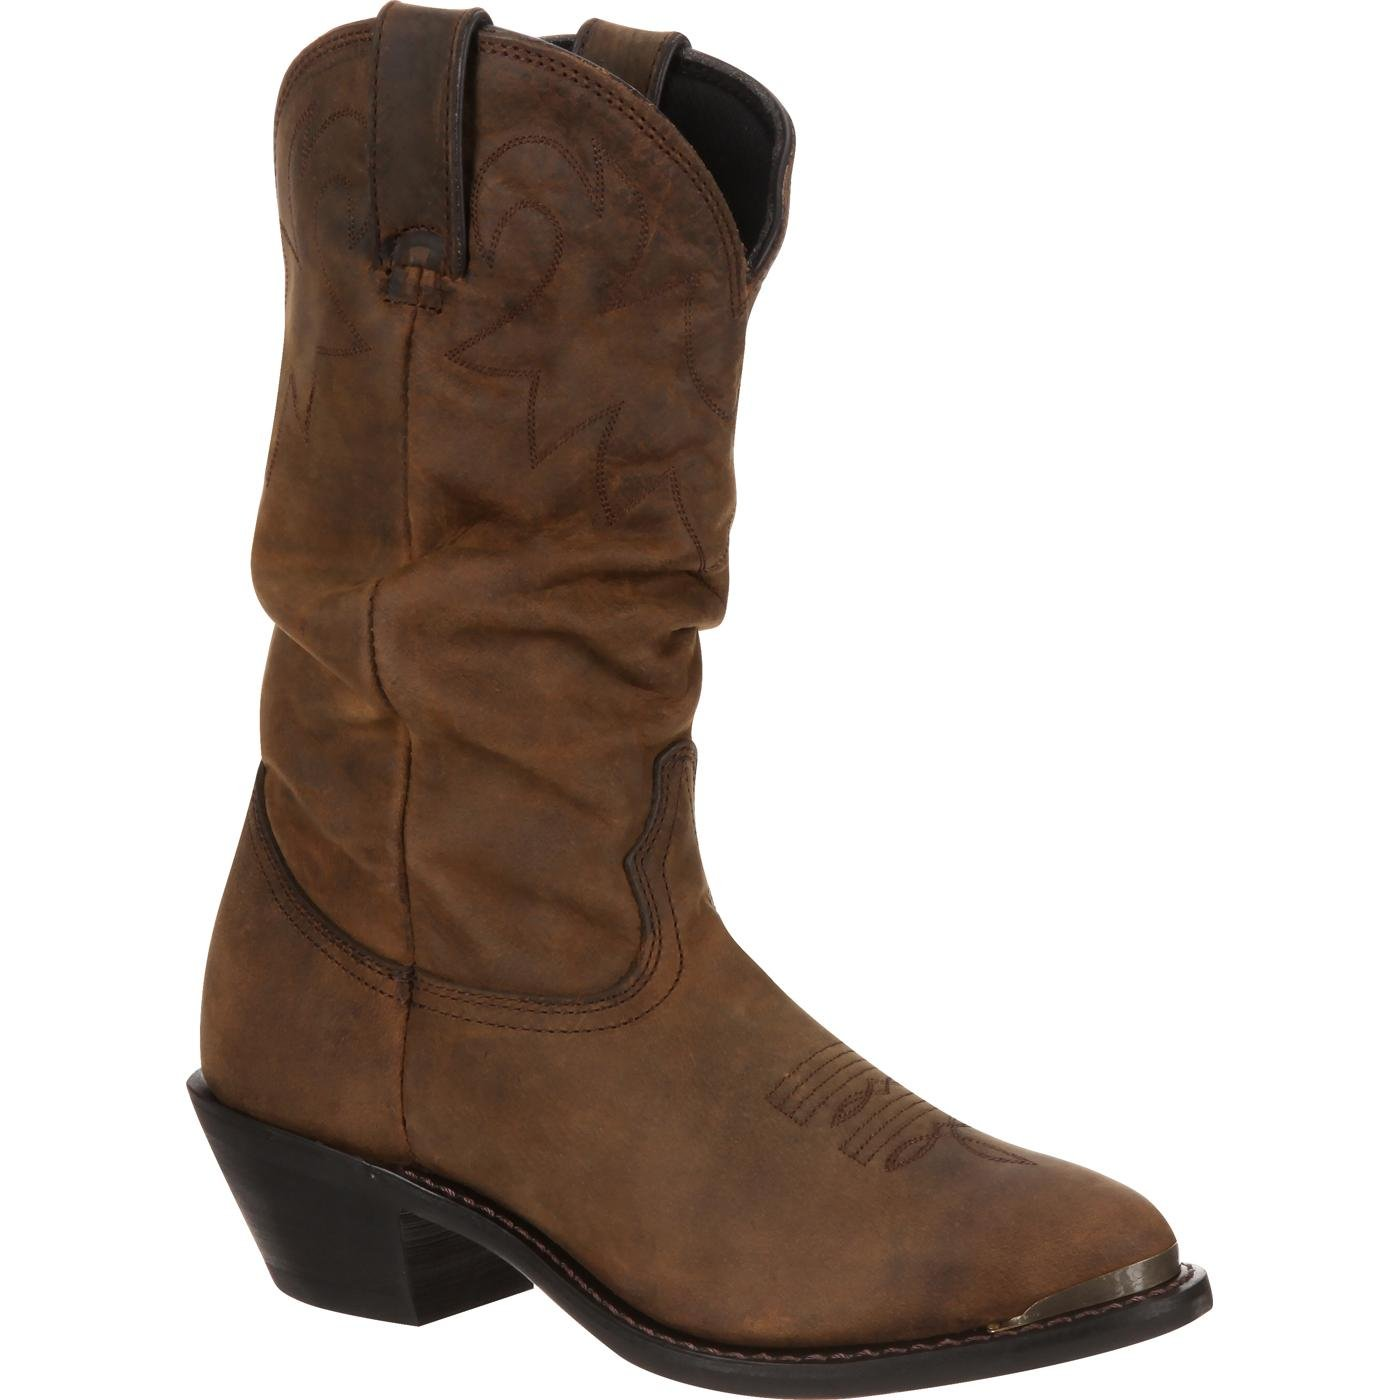 98ae8c001a9 Durango Women's Distressed Tan Slouch Western Boot